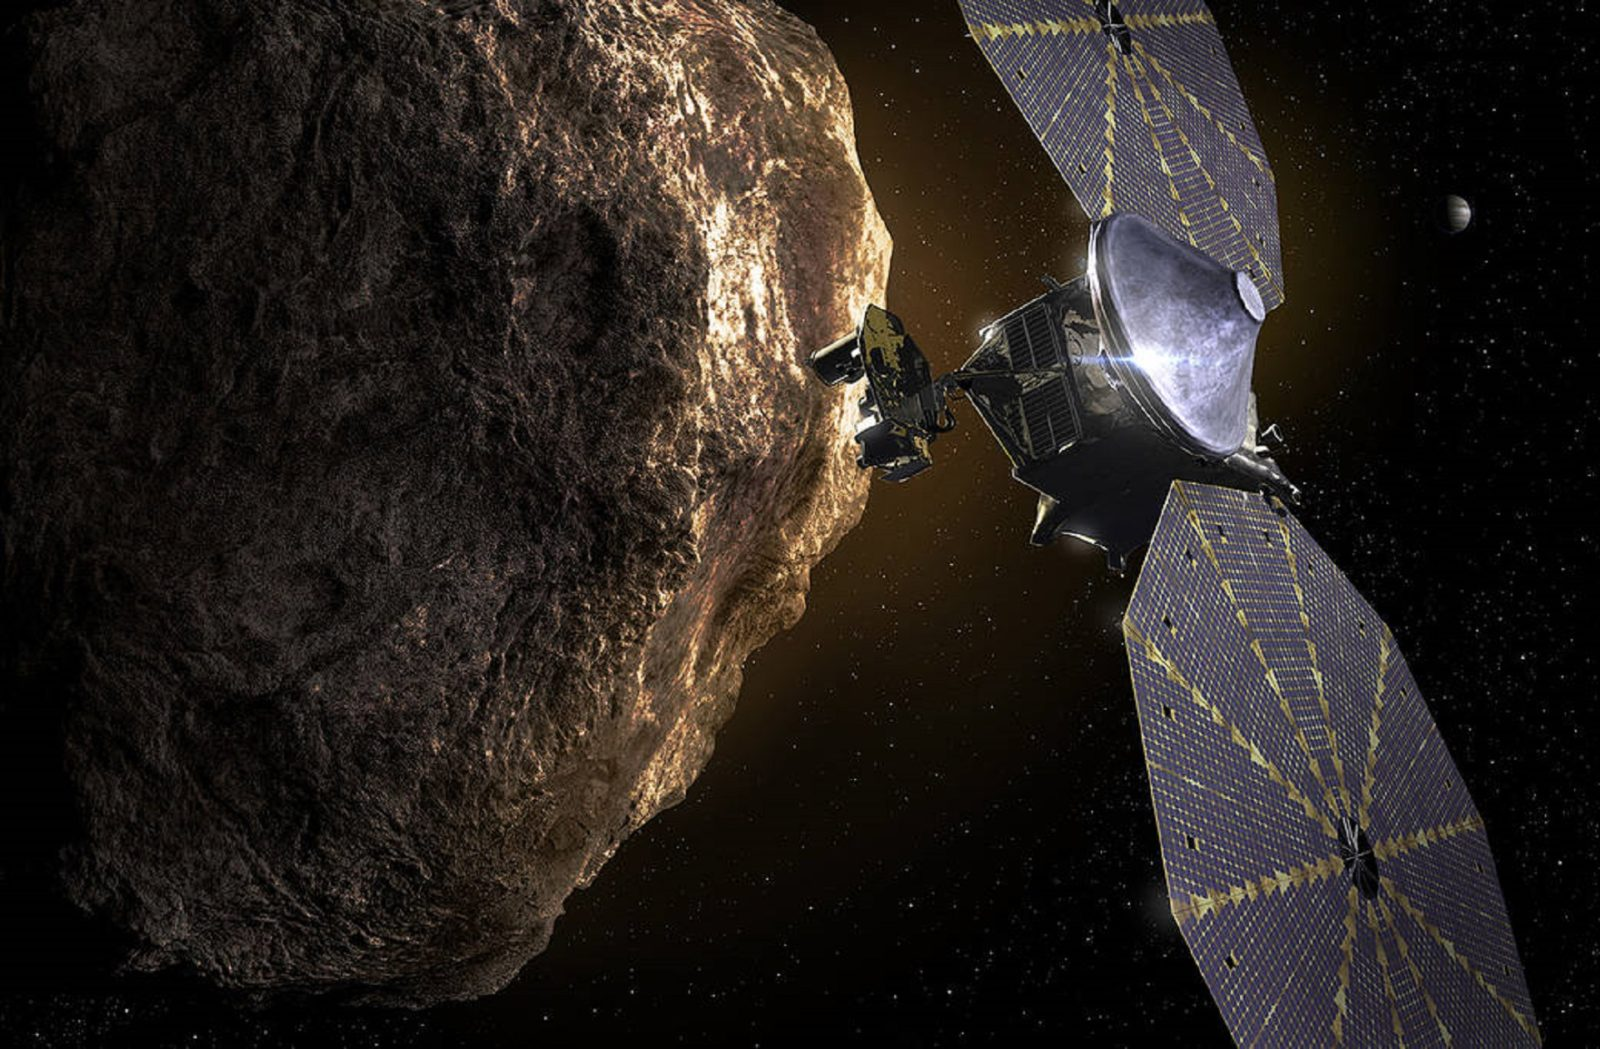 nasa's-time-capsule-on-the-lucy-spacecraft-carries-messages-for-future-humans